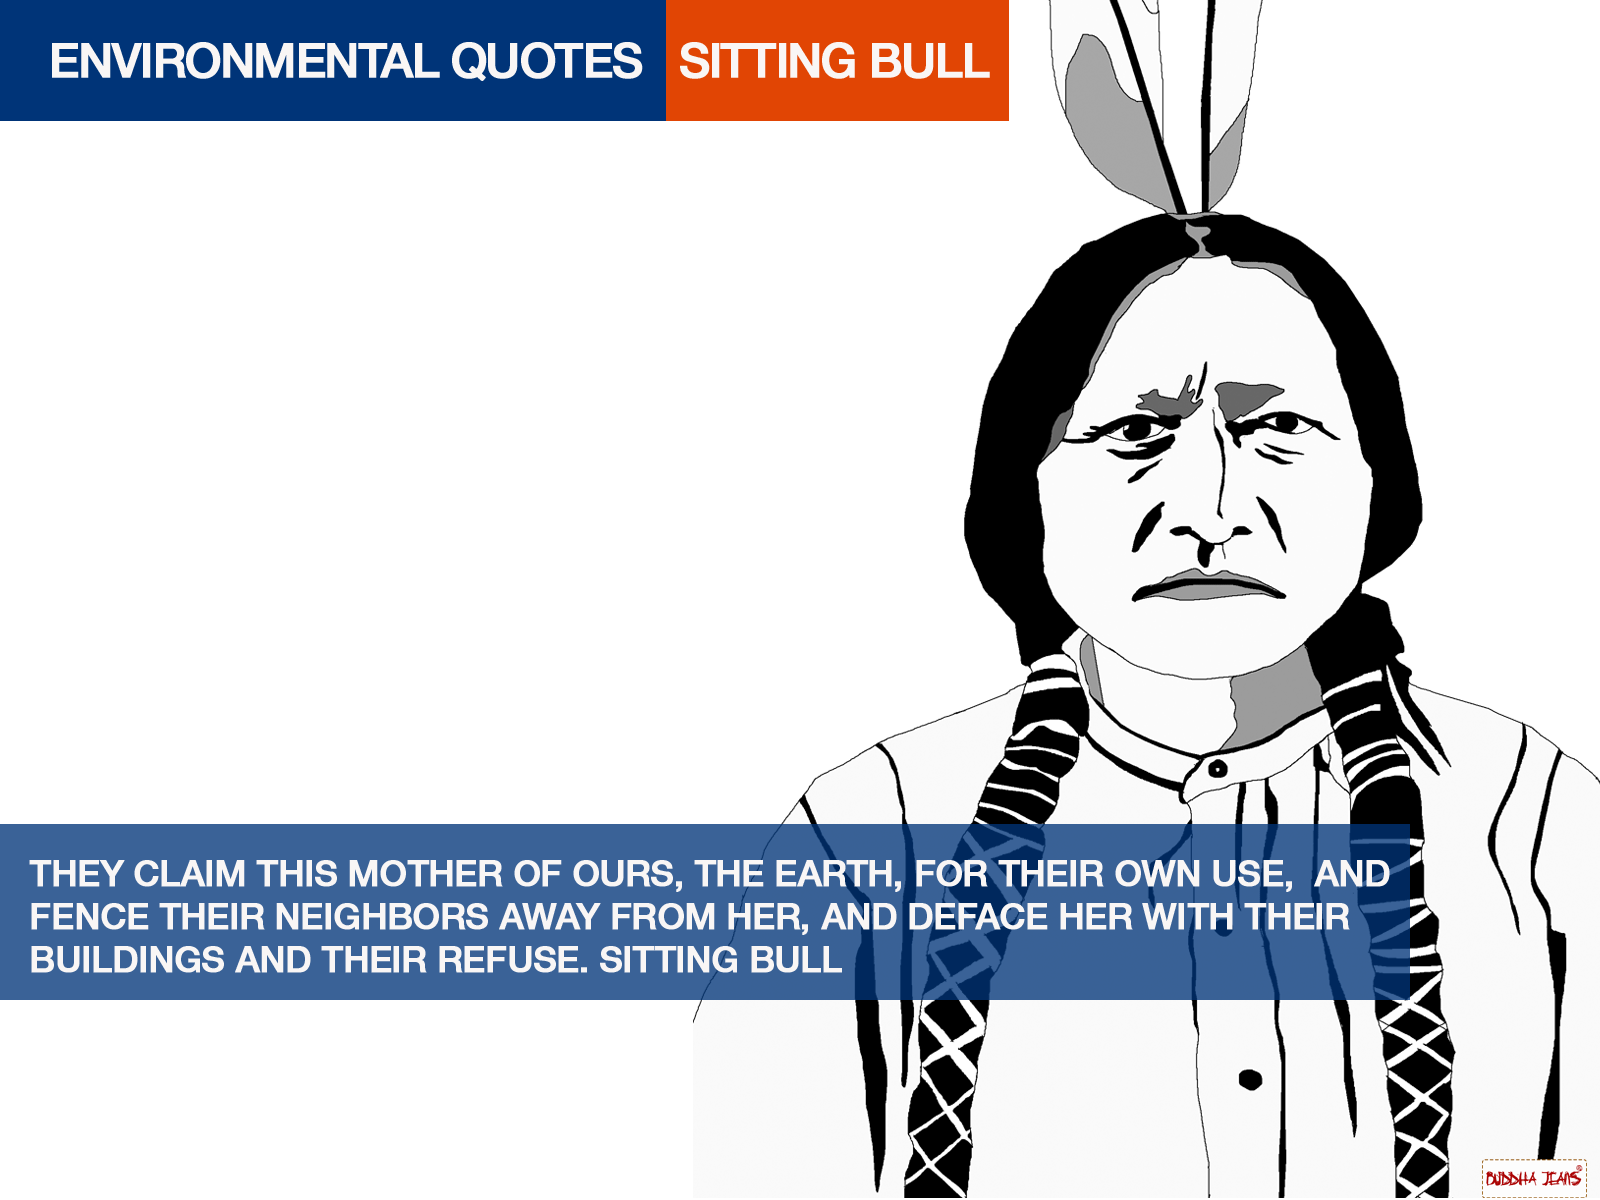 sitting-bull-large-environmental-quotes